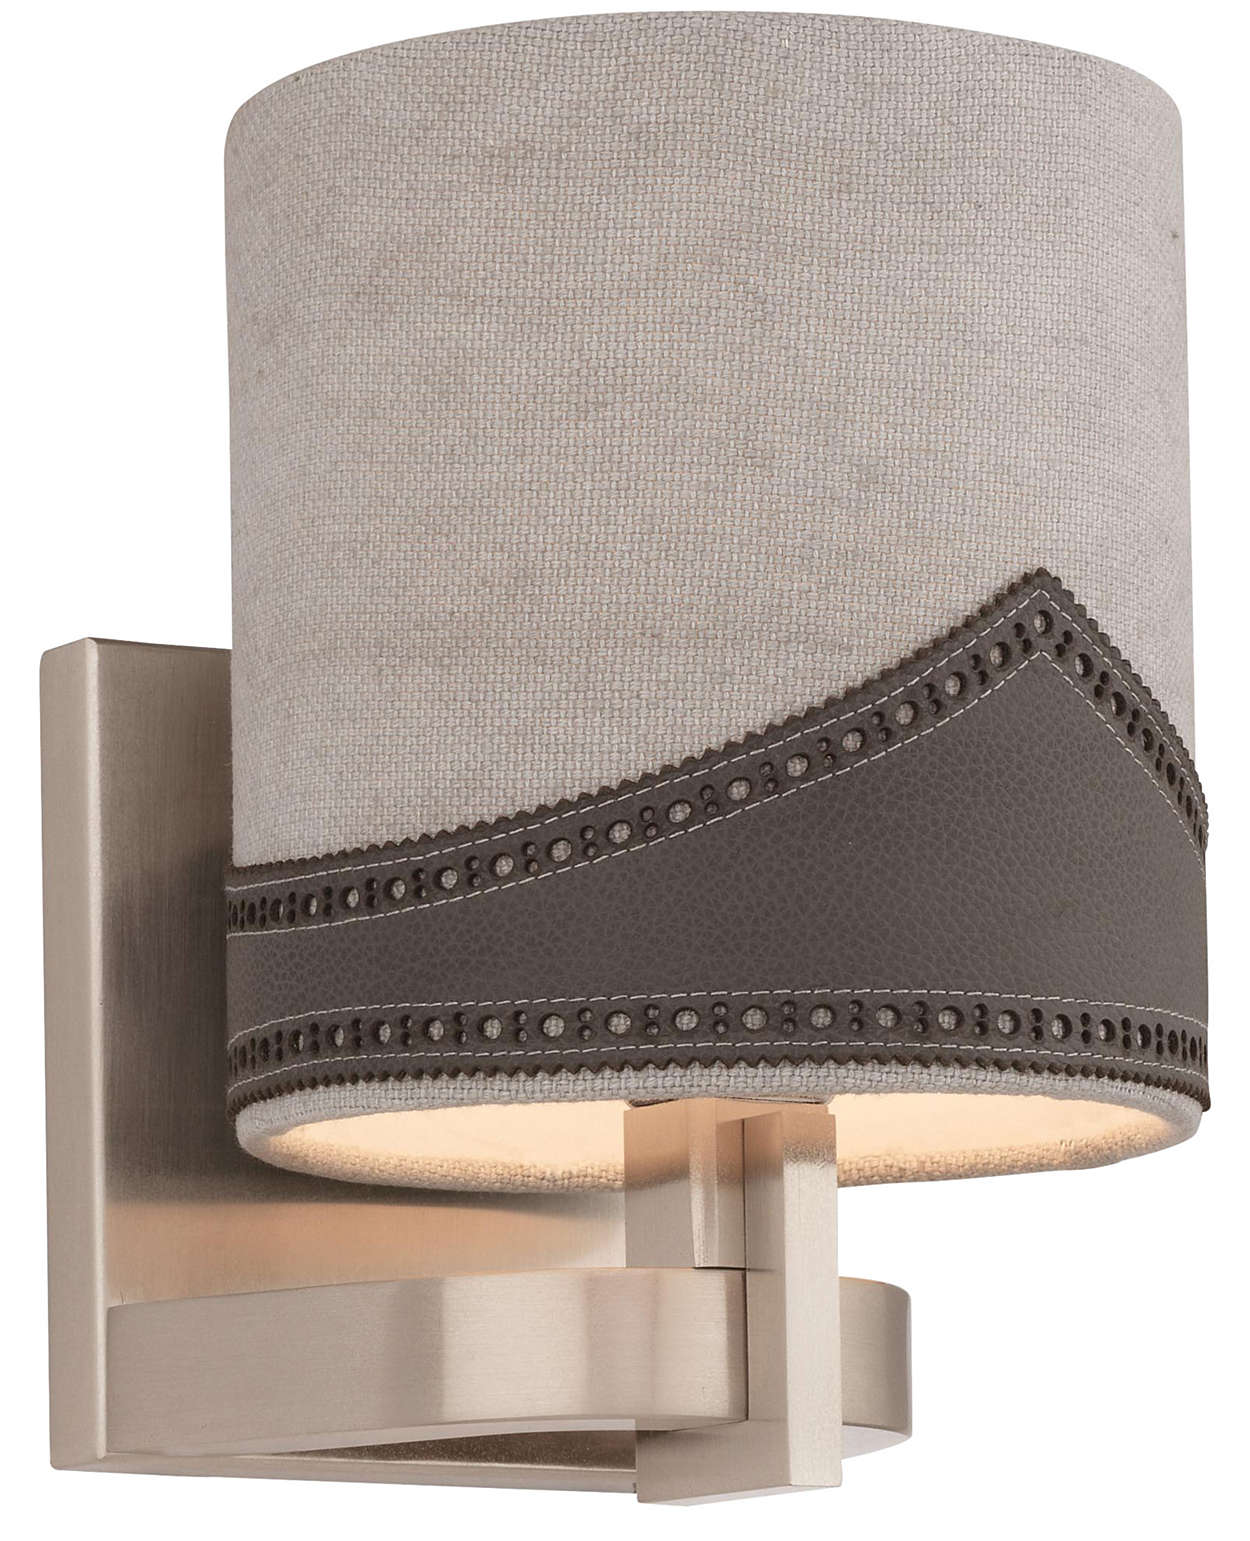 Wing Tip 1-light Wall in Satin Nickel finish